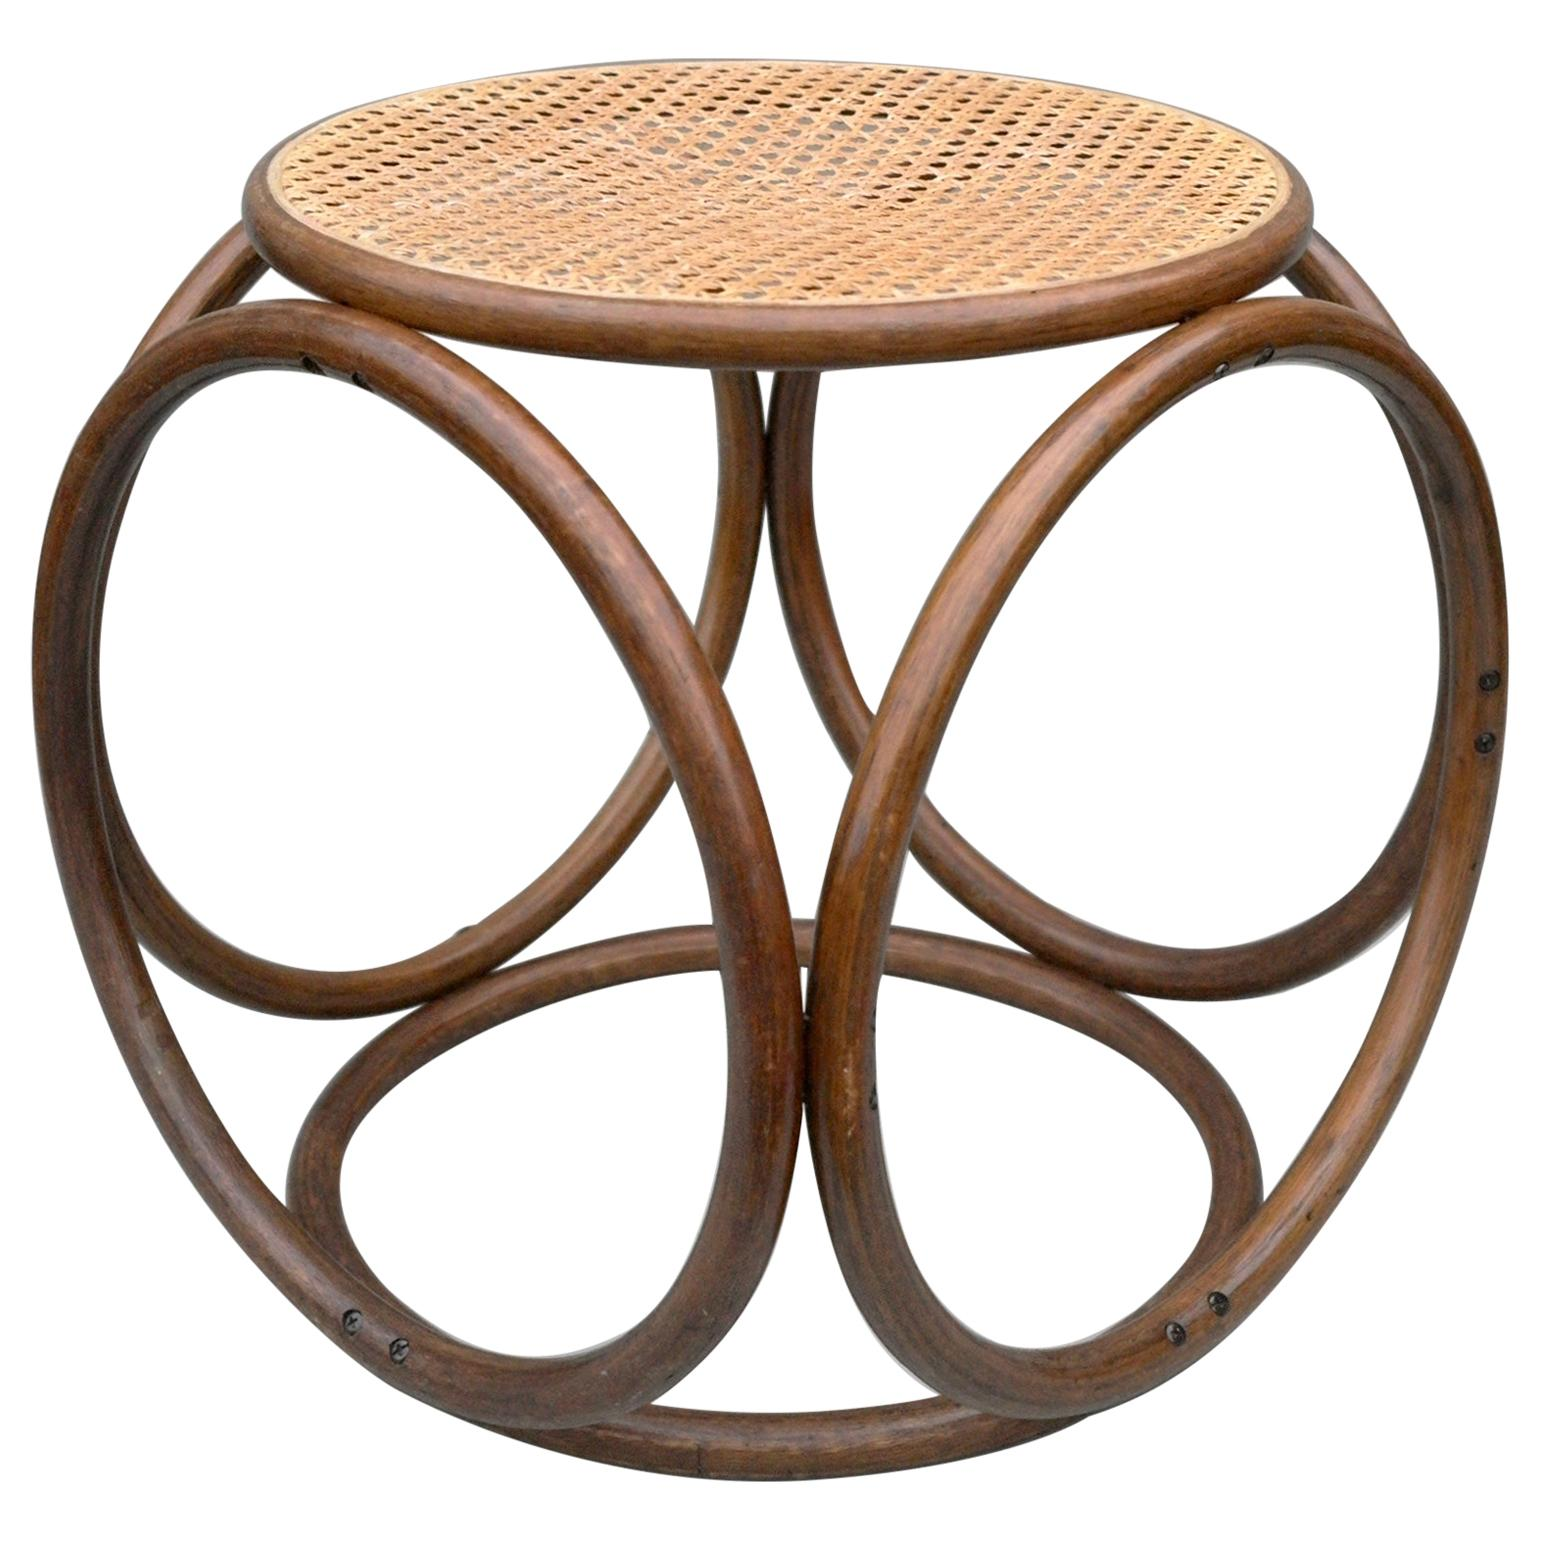 Michael Thonet Stool Side Table in Cane and Bentwood, Austria, 1960s